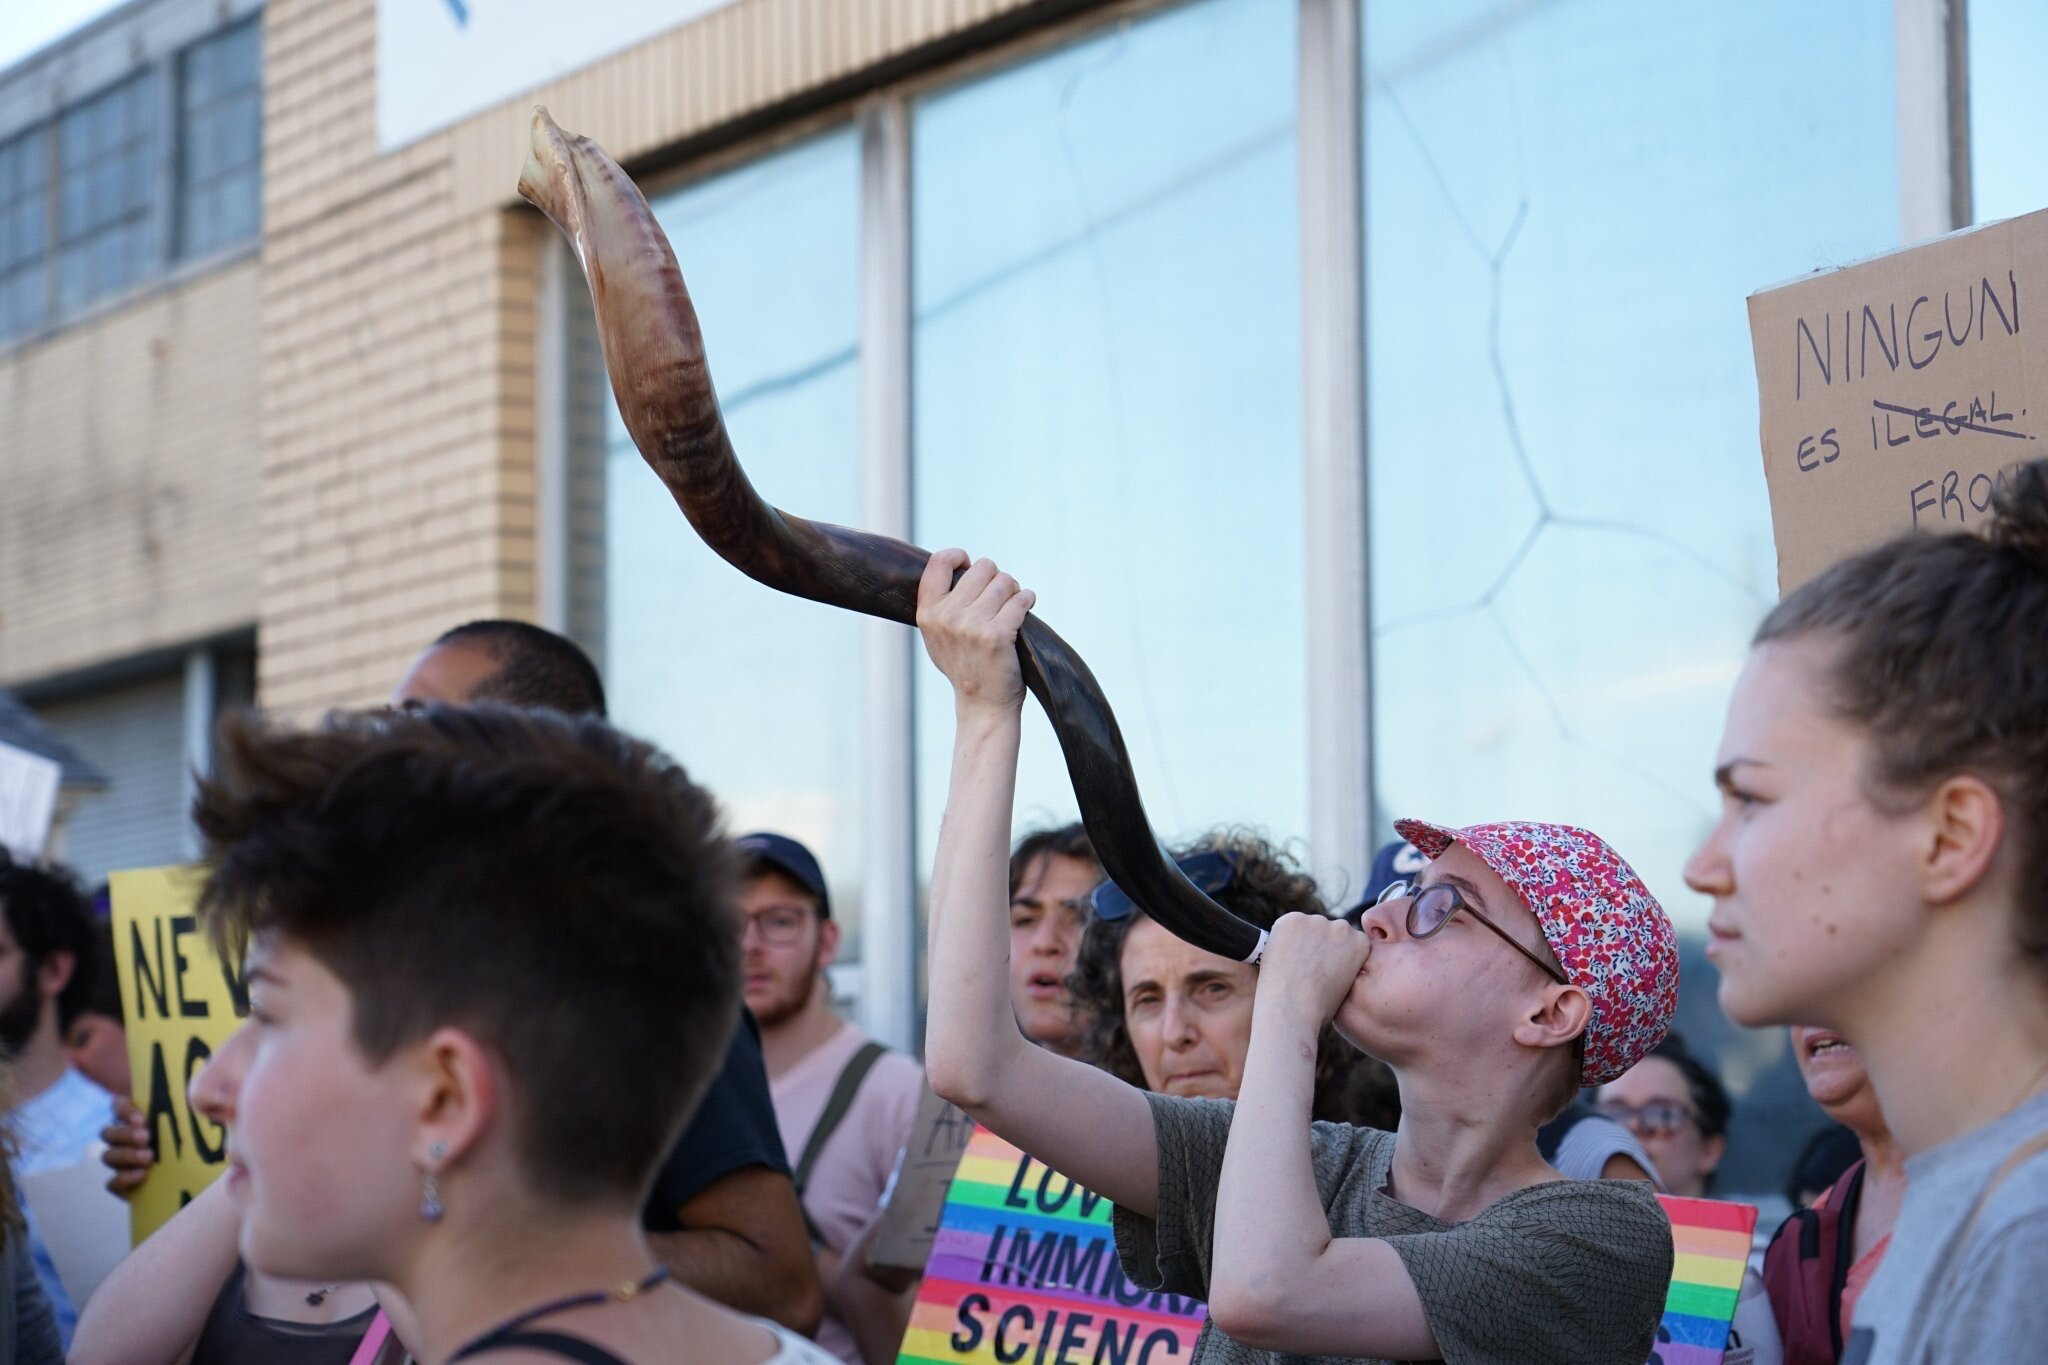 Blowing the traditional shofar, to awaken us to injustice.